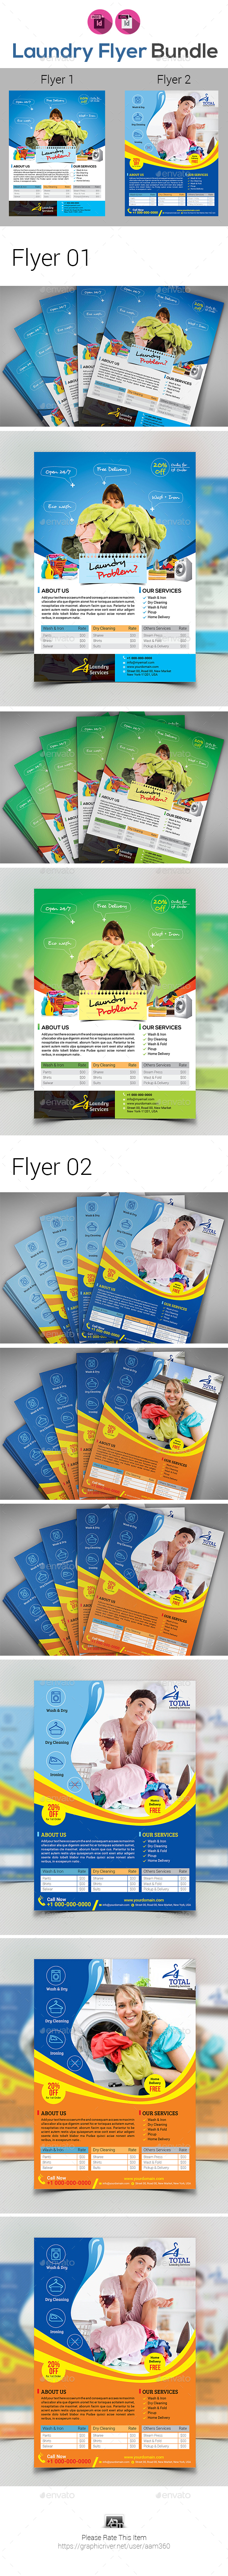 Laundry Services Flyer Bundle - Flyers Print Templates